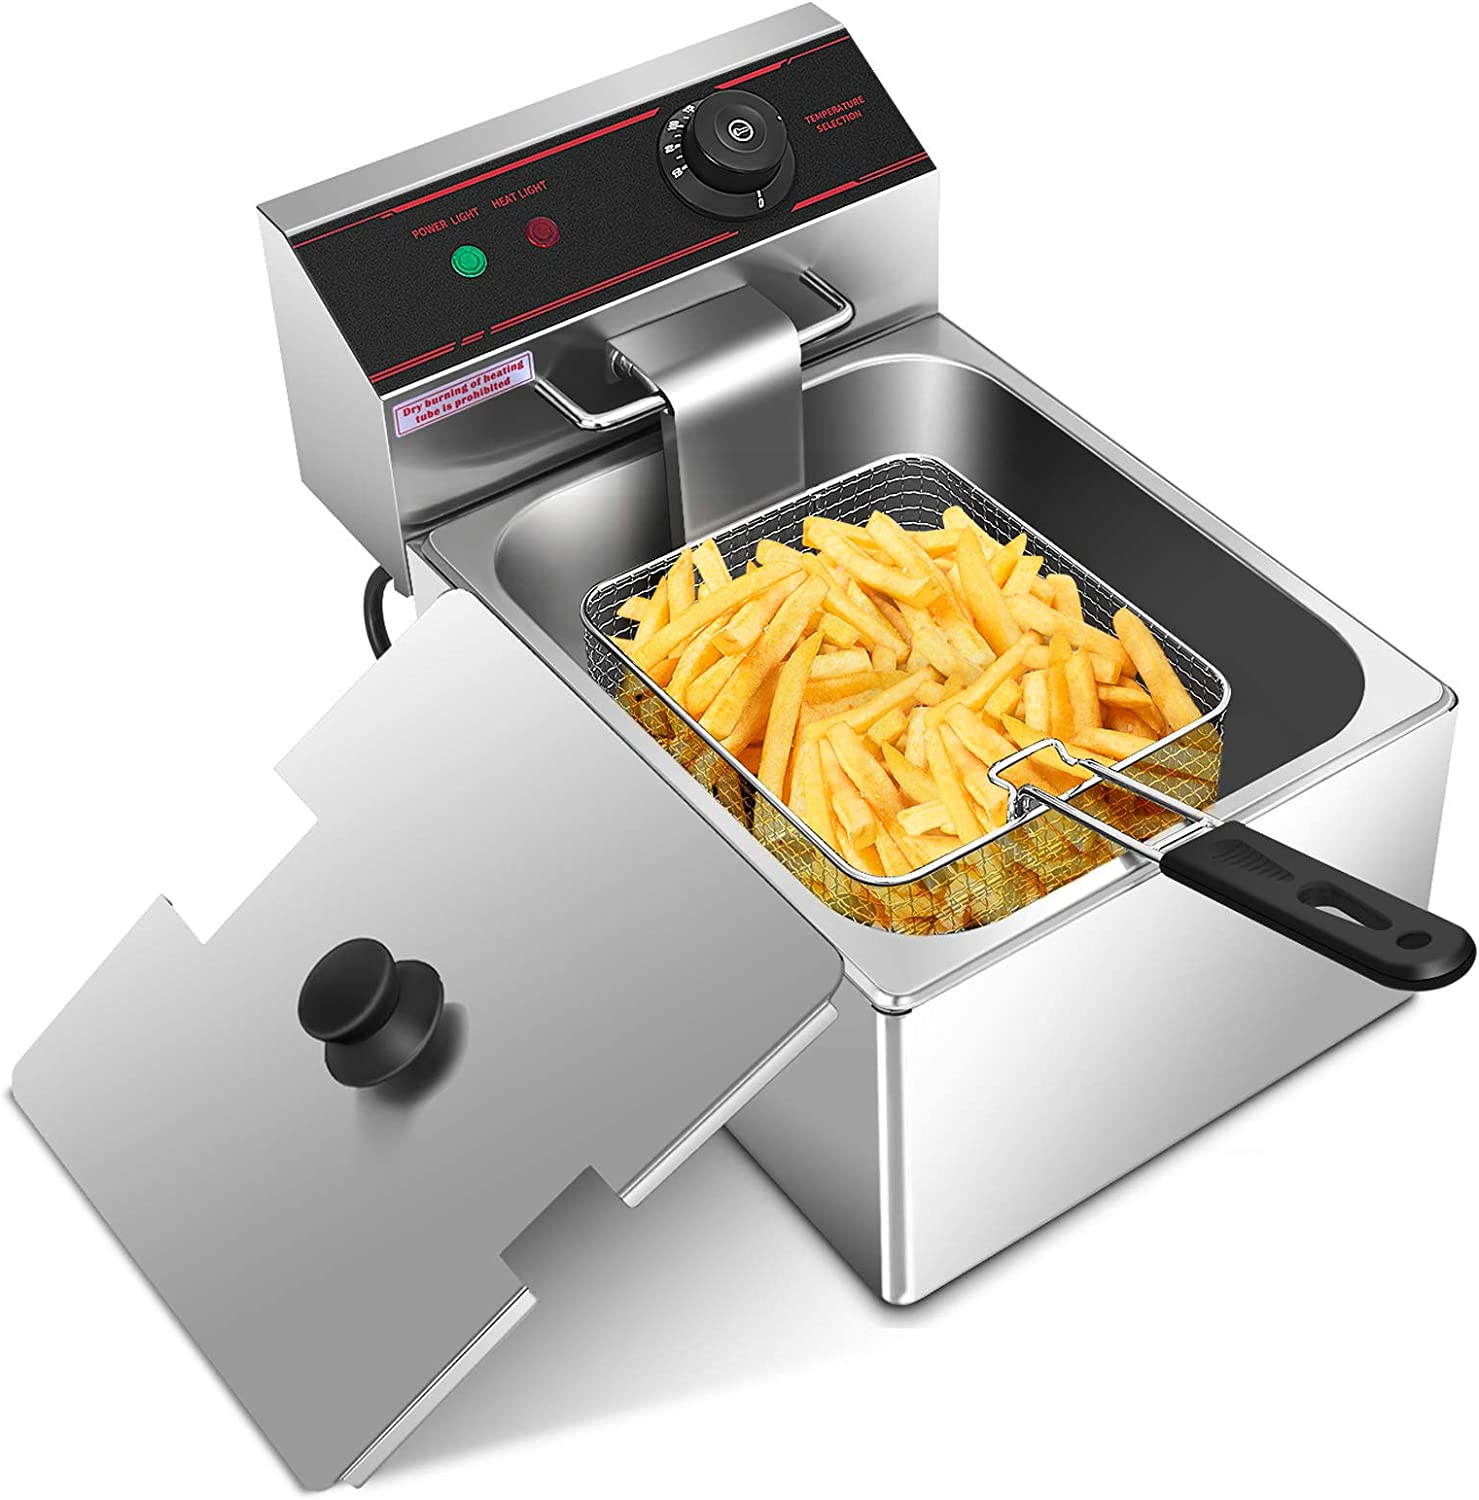 ARLIME Deep Fryer with Basket, 1700W Stainless Steel Electric Countertop Deep Fryer with 6.4 Quart Oil Container & Lid, Adjustable Temperature, Large Capacity Kitchen Frying Machine Perfect for Chicken, Shrimp, French Fries